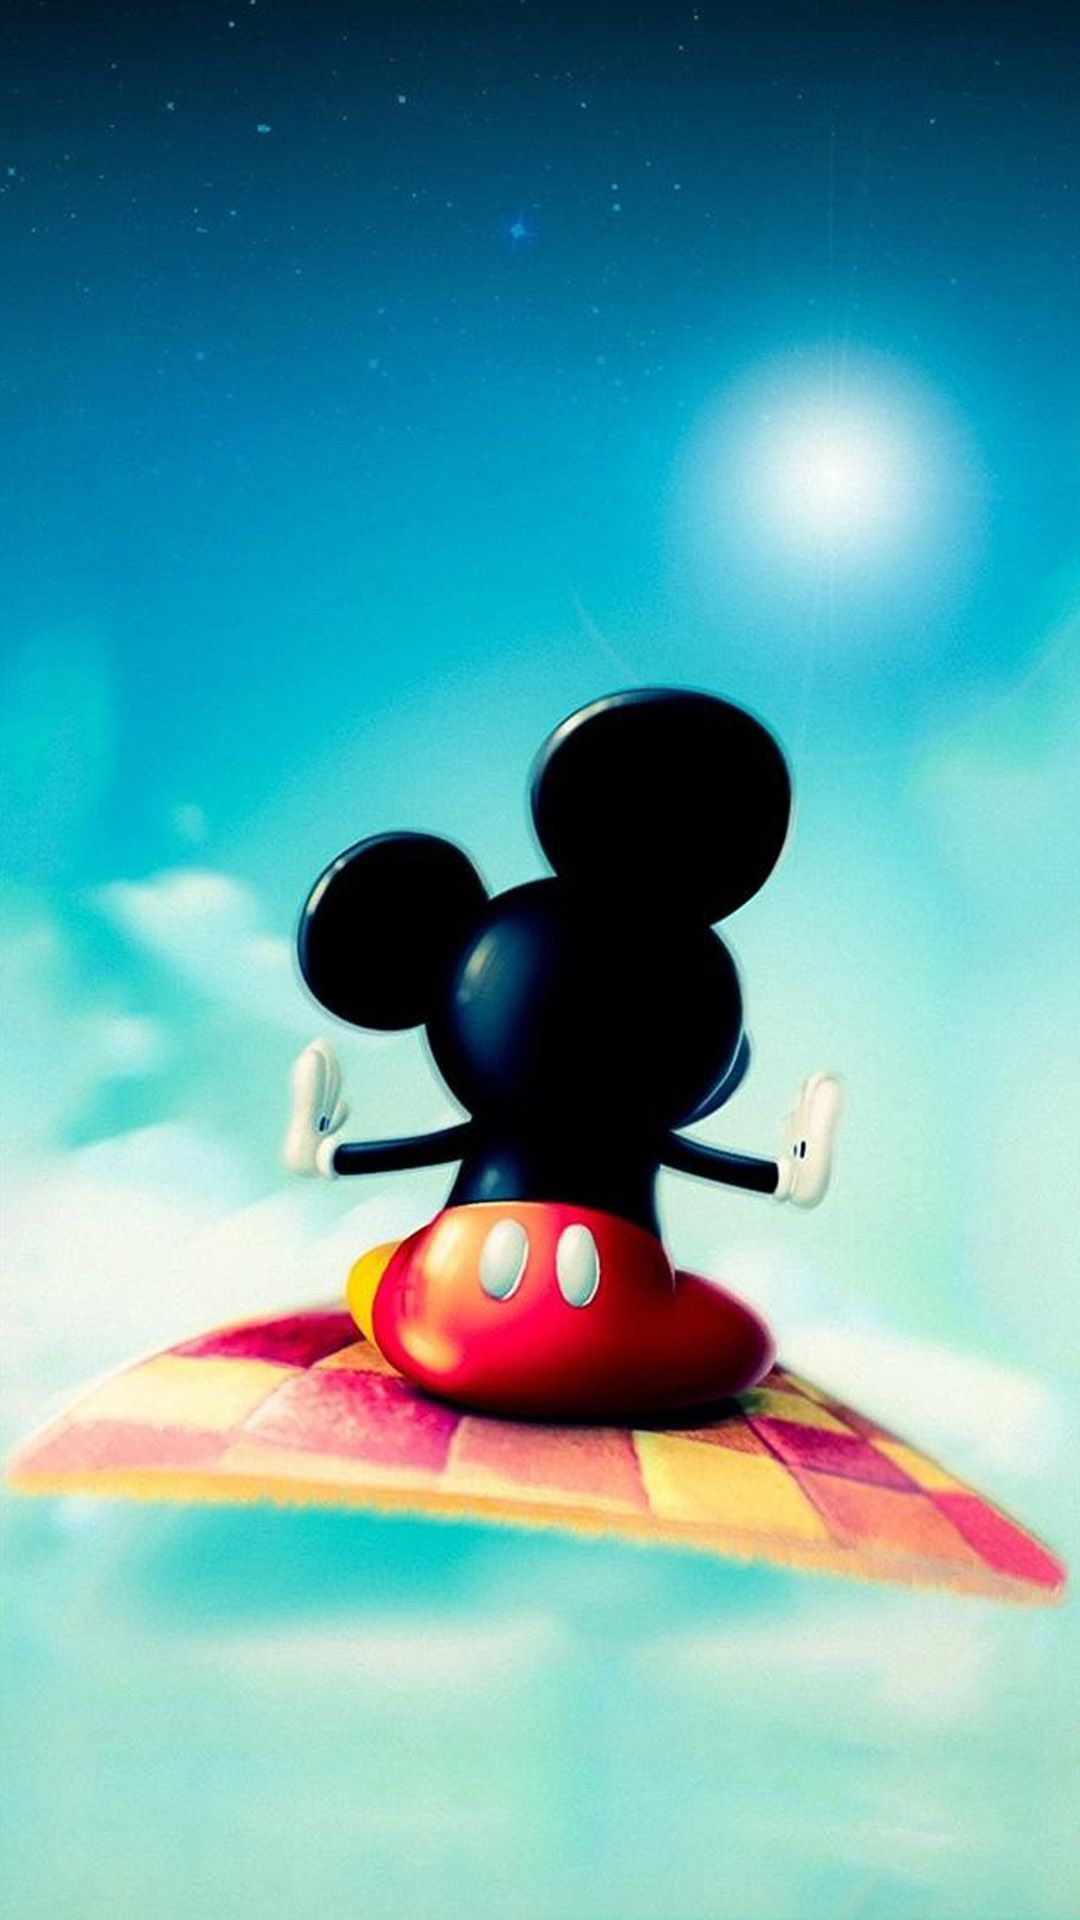 Cute Disney Wallpapers for iPhone SonyMobilePhones